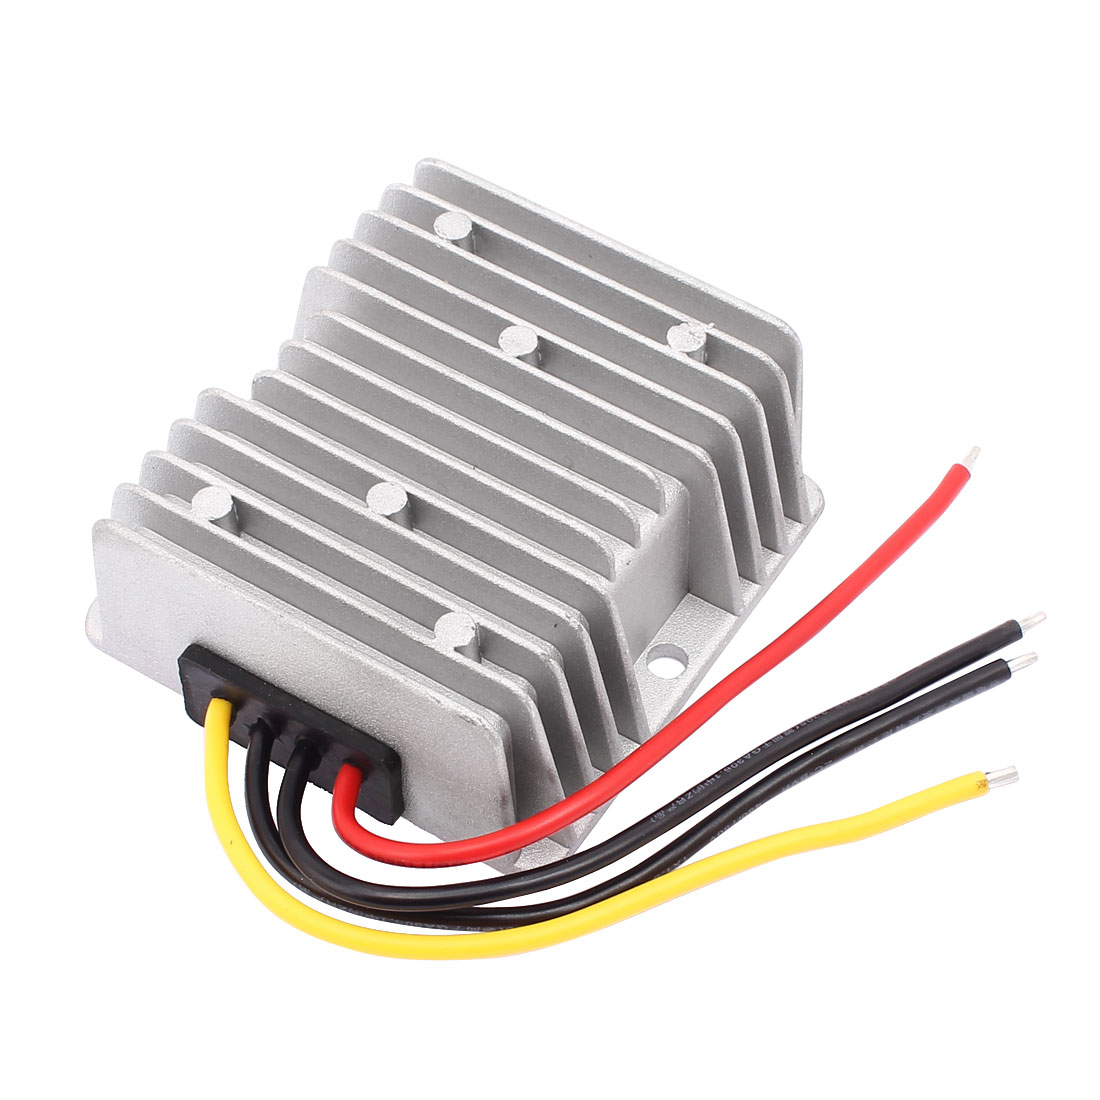 DC12V(9V~13V) Step-up to DC13.8V 12A 165W Waterproof Power Converter Regulator Transformer